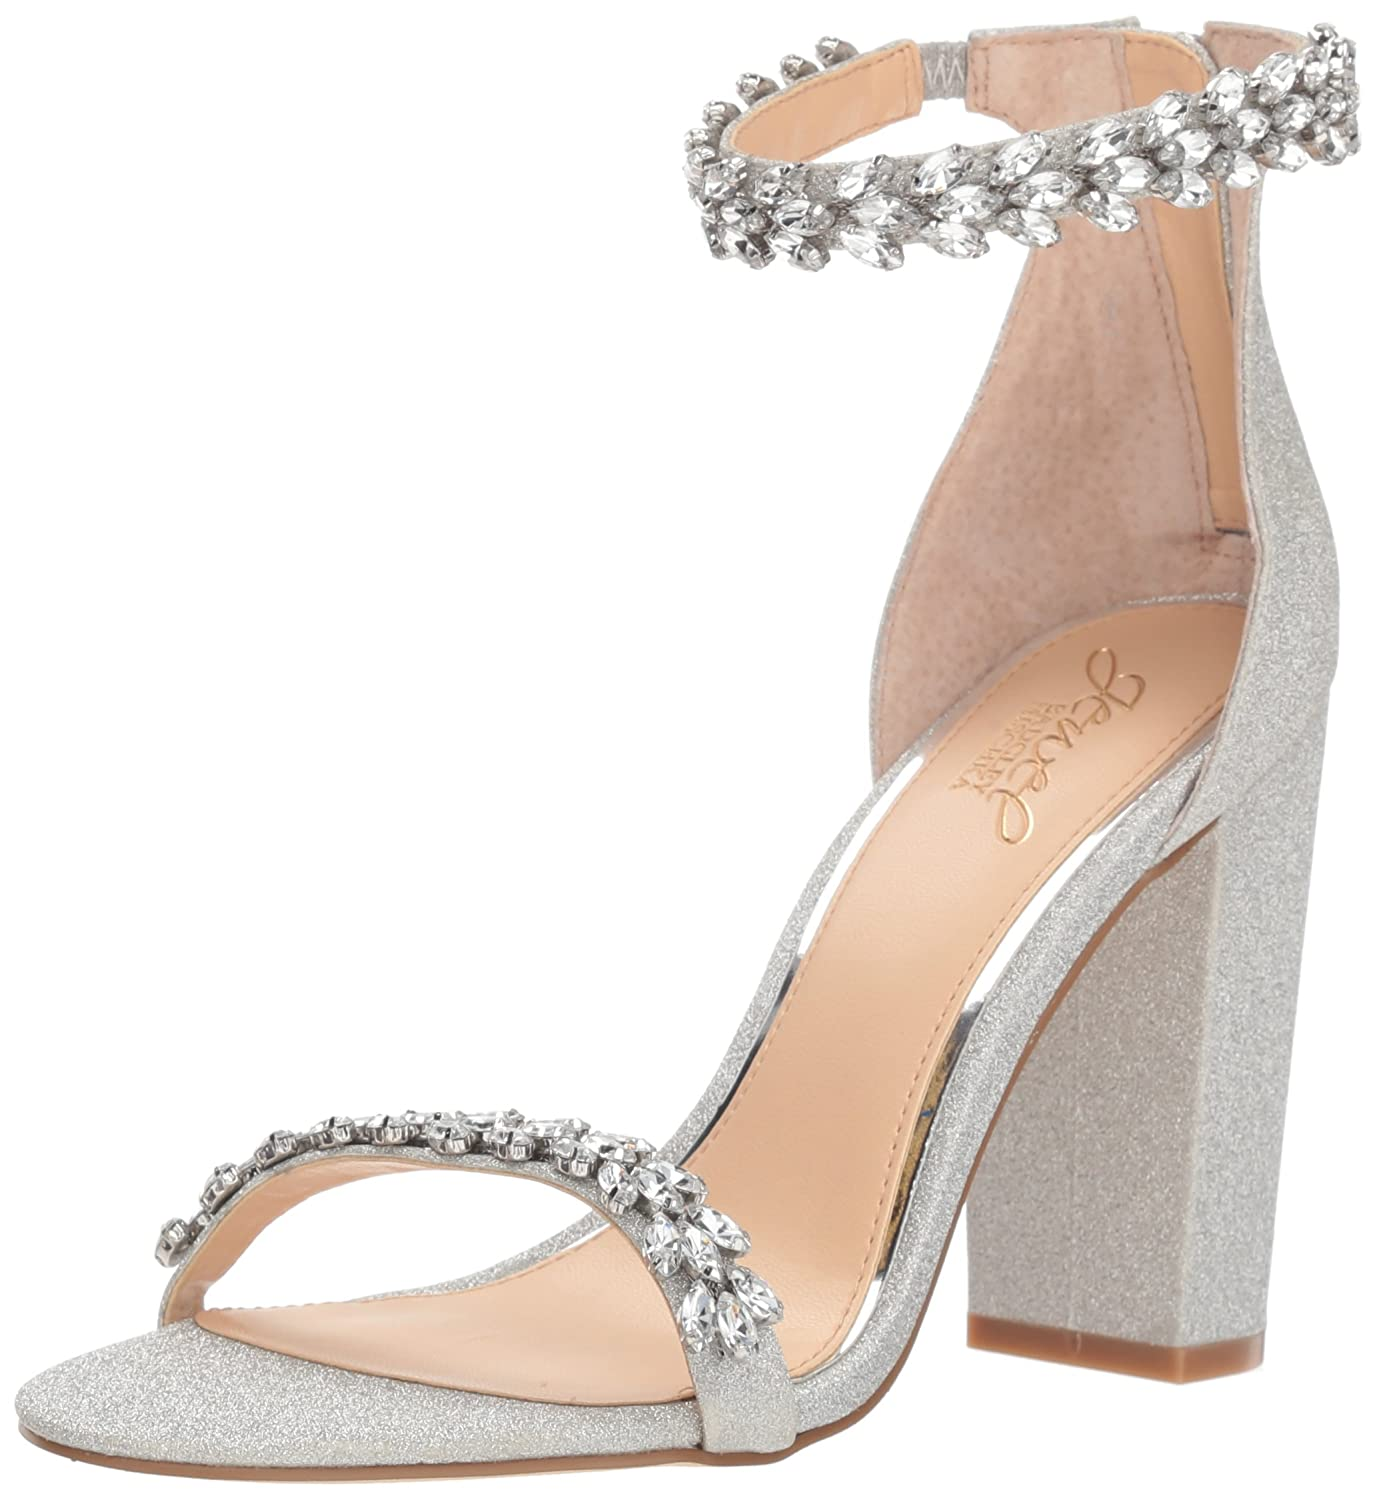 Badgley Mischka Women's Mayra Heeled Sandal Jewel Badgley Mischka JW2529